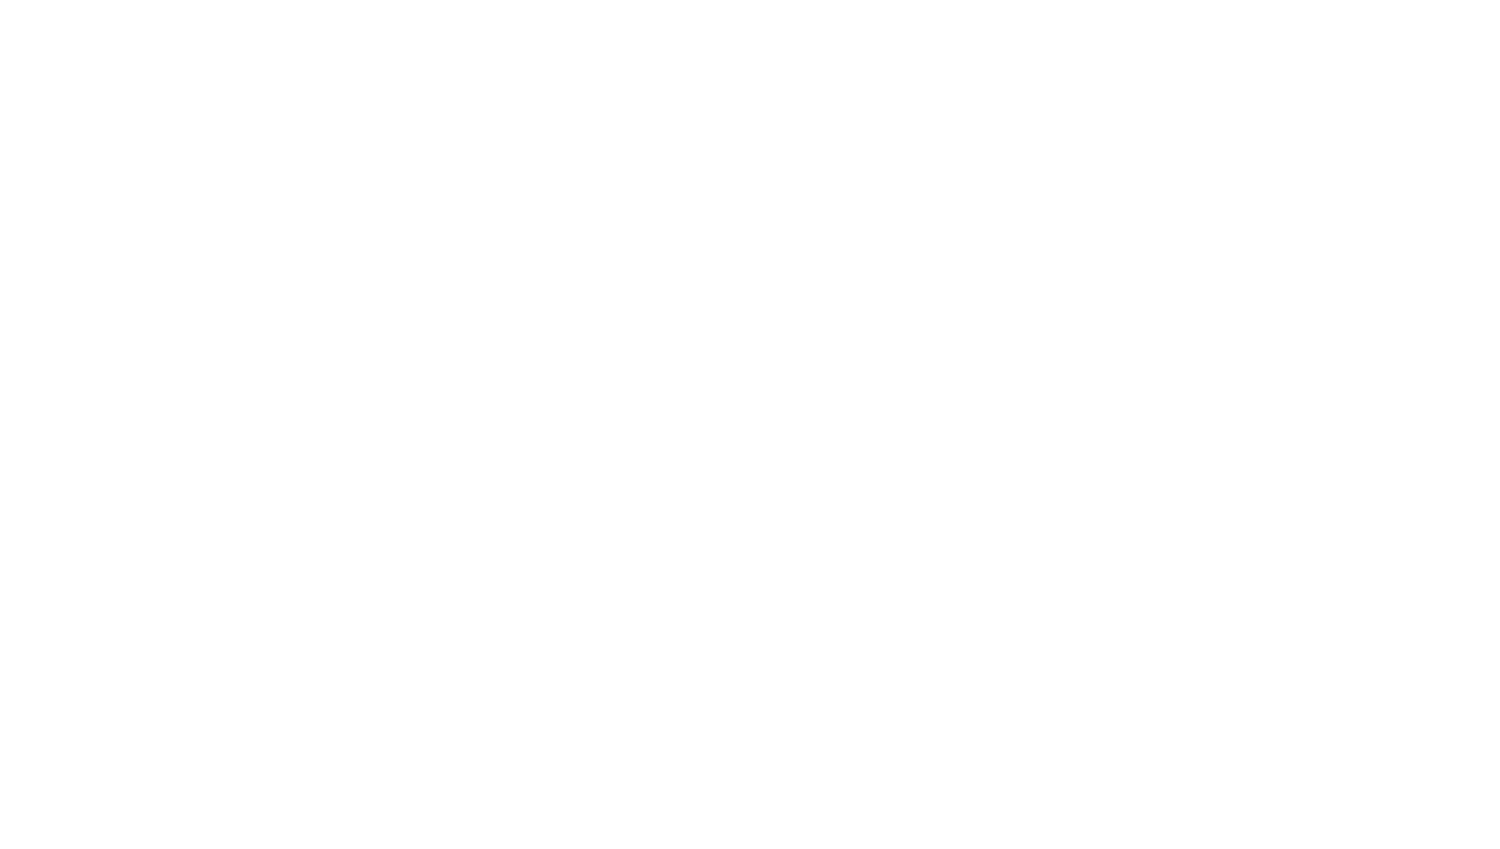 David Murray Greer